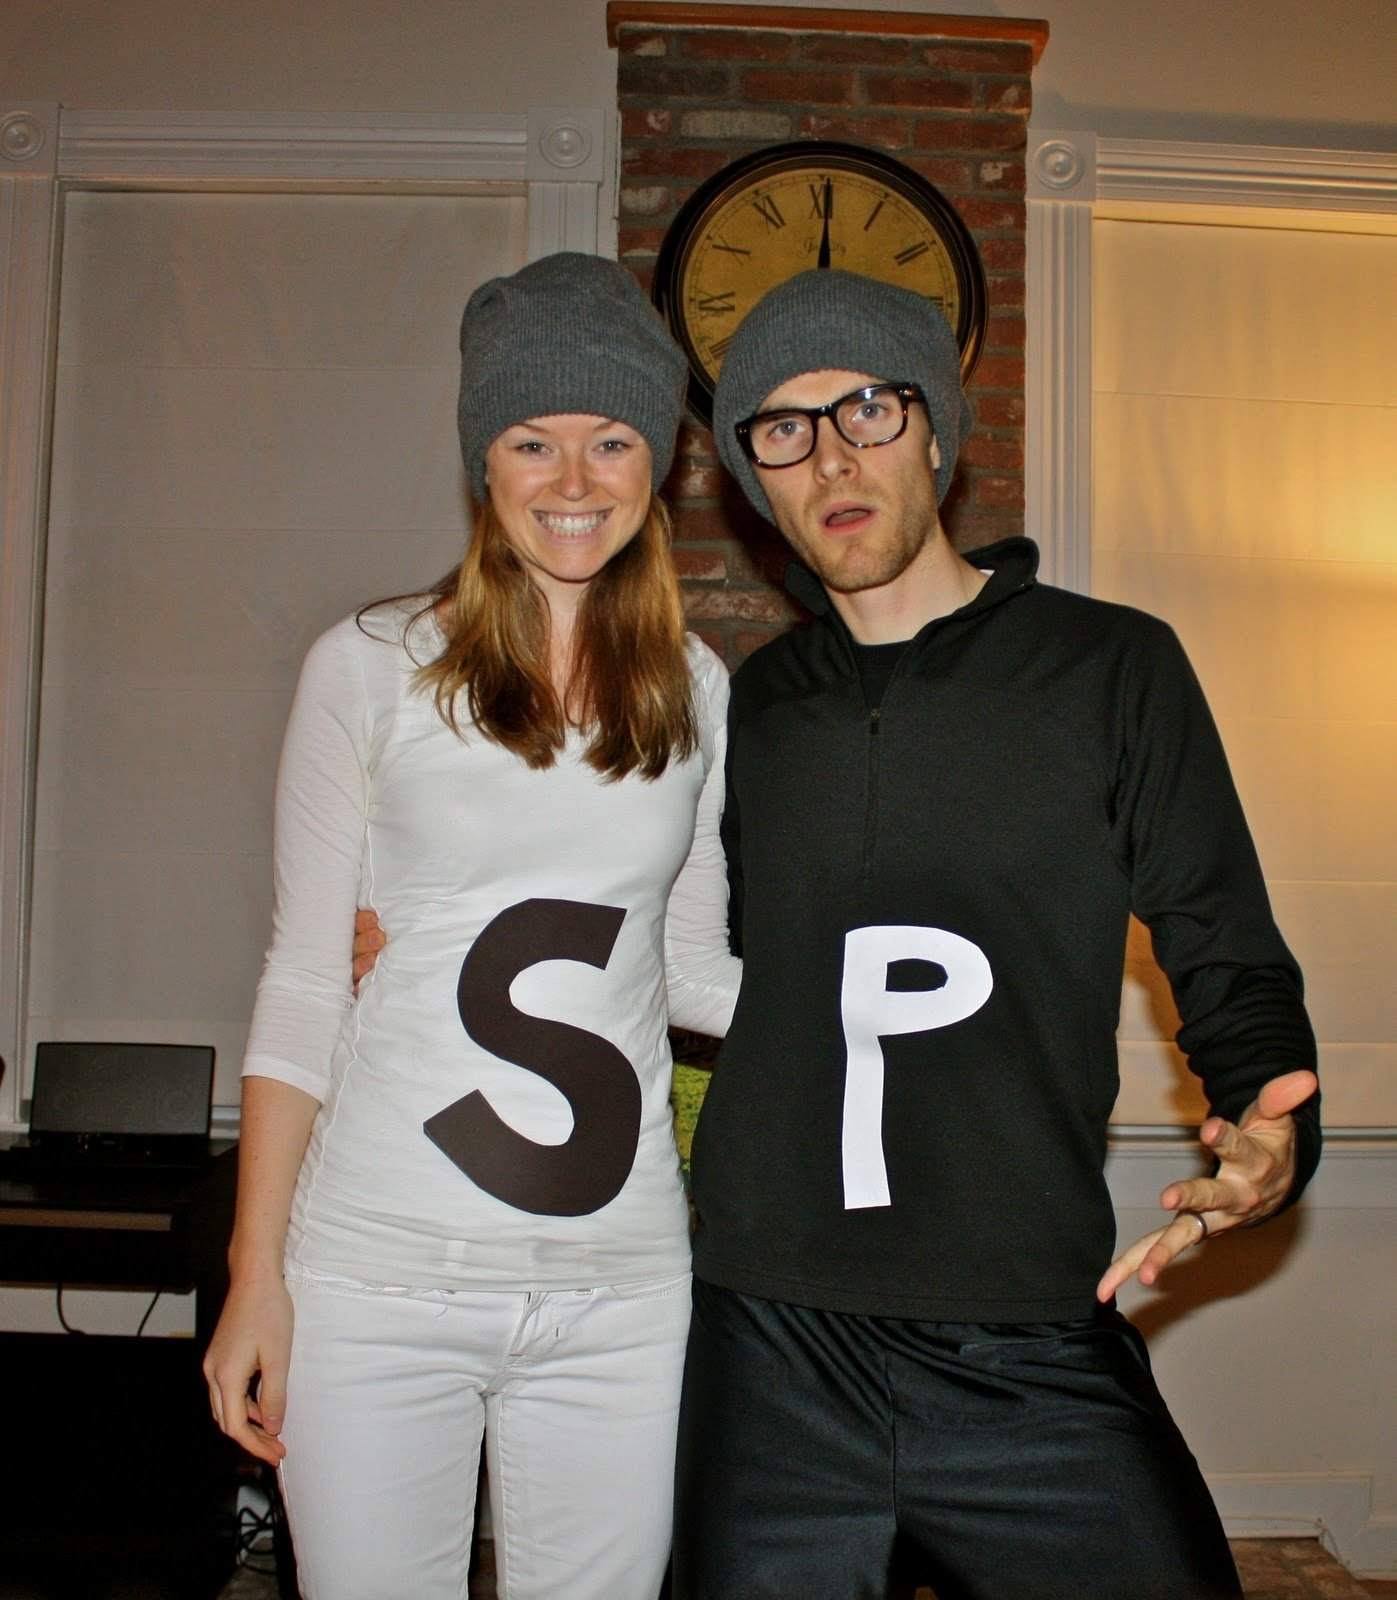 10 Famous Homemade Halloween Costume Ideas Couples halloween costumes food couture my burning kitchen 2020